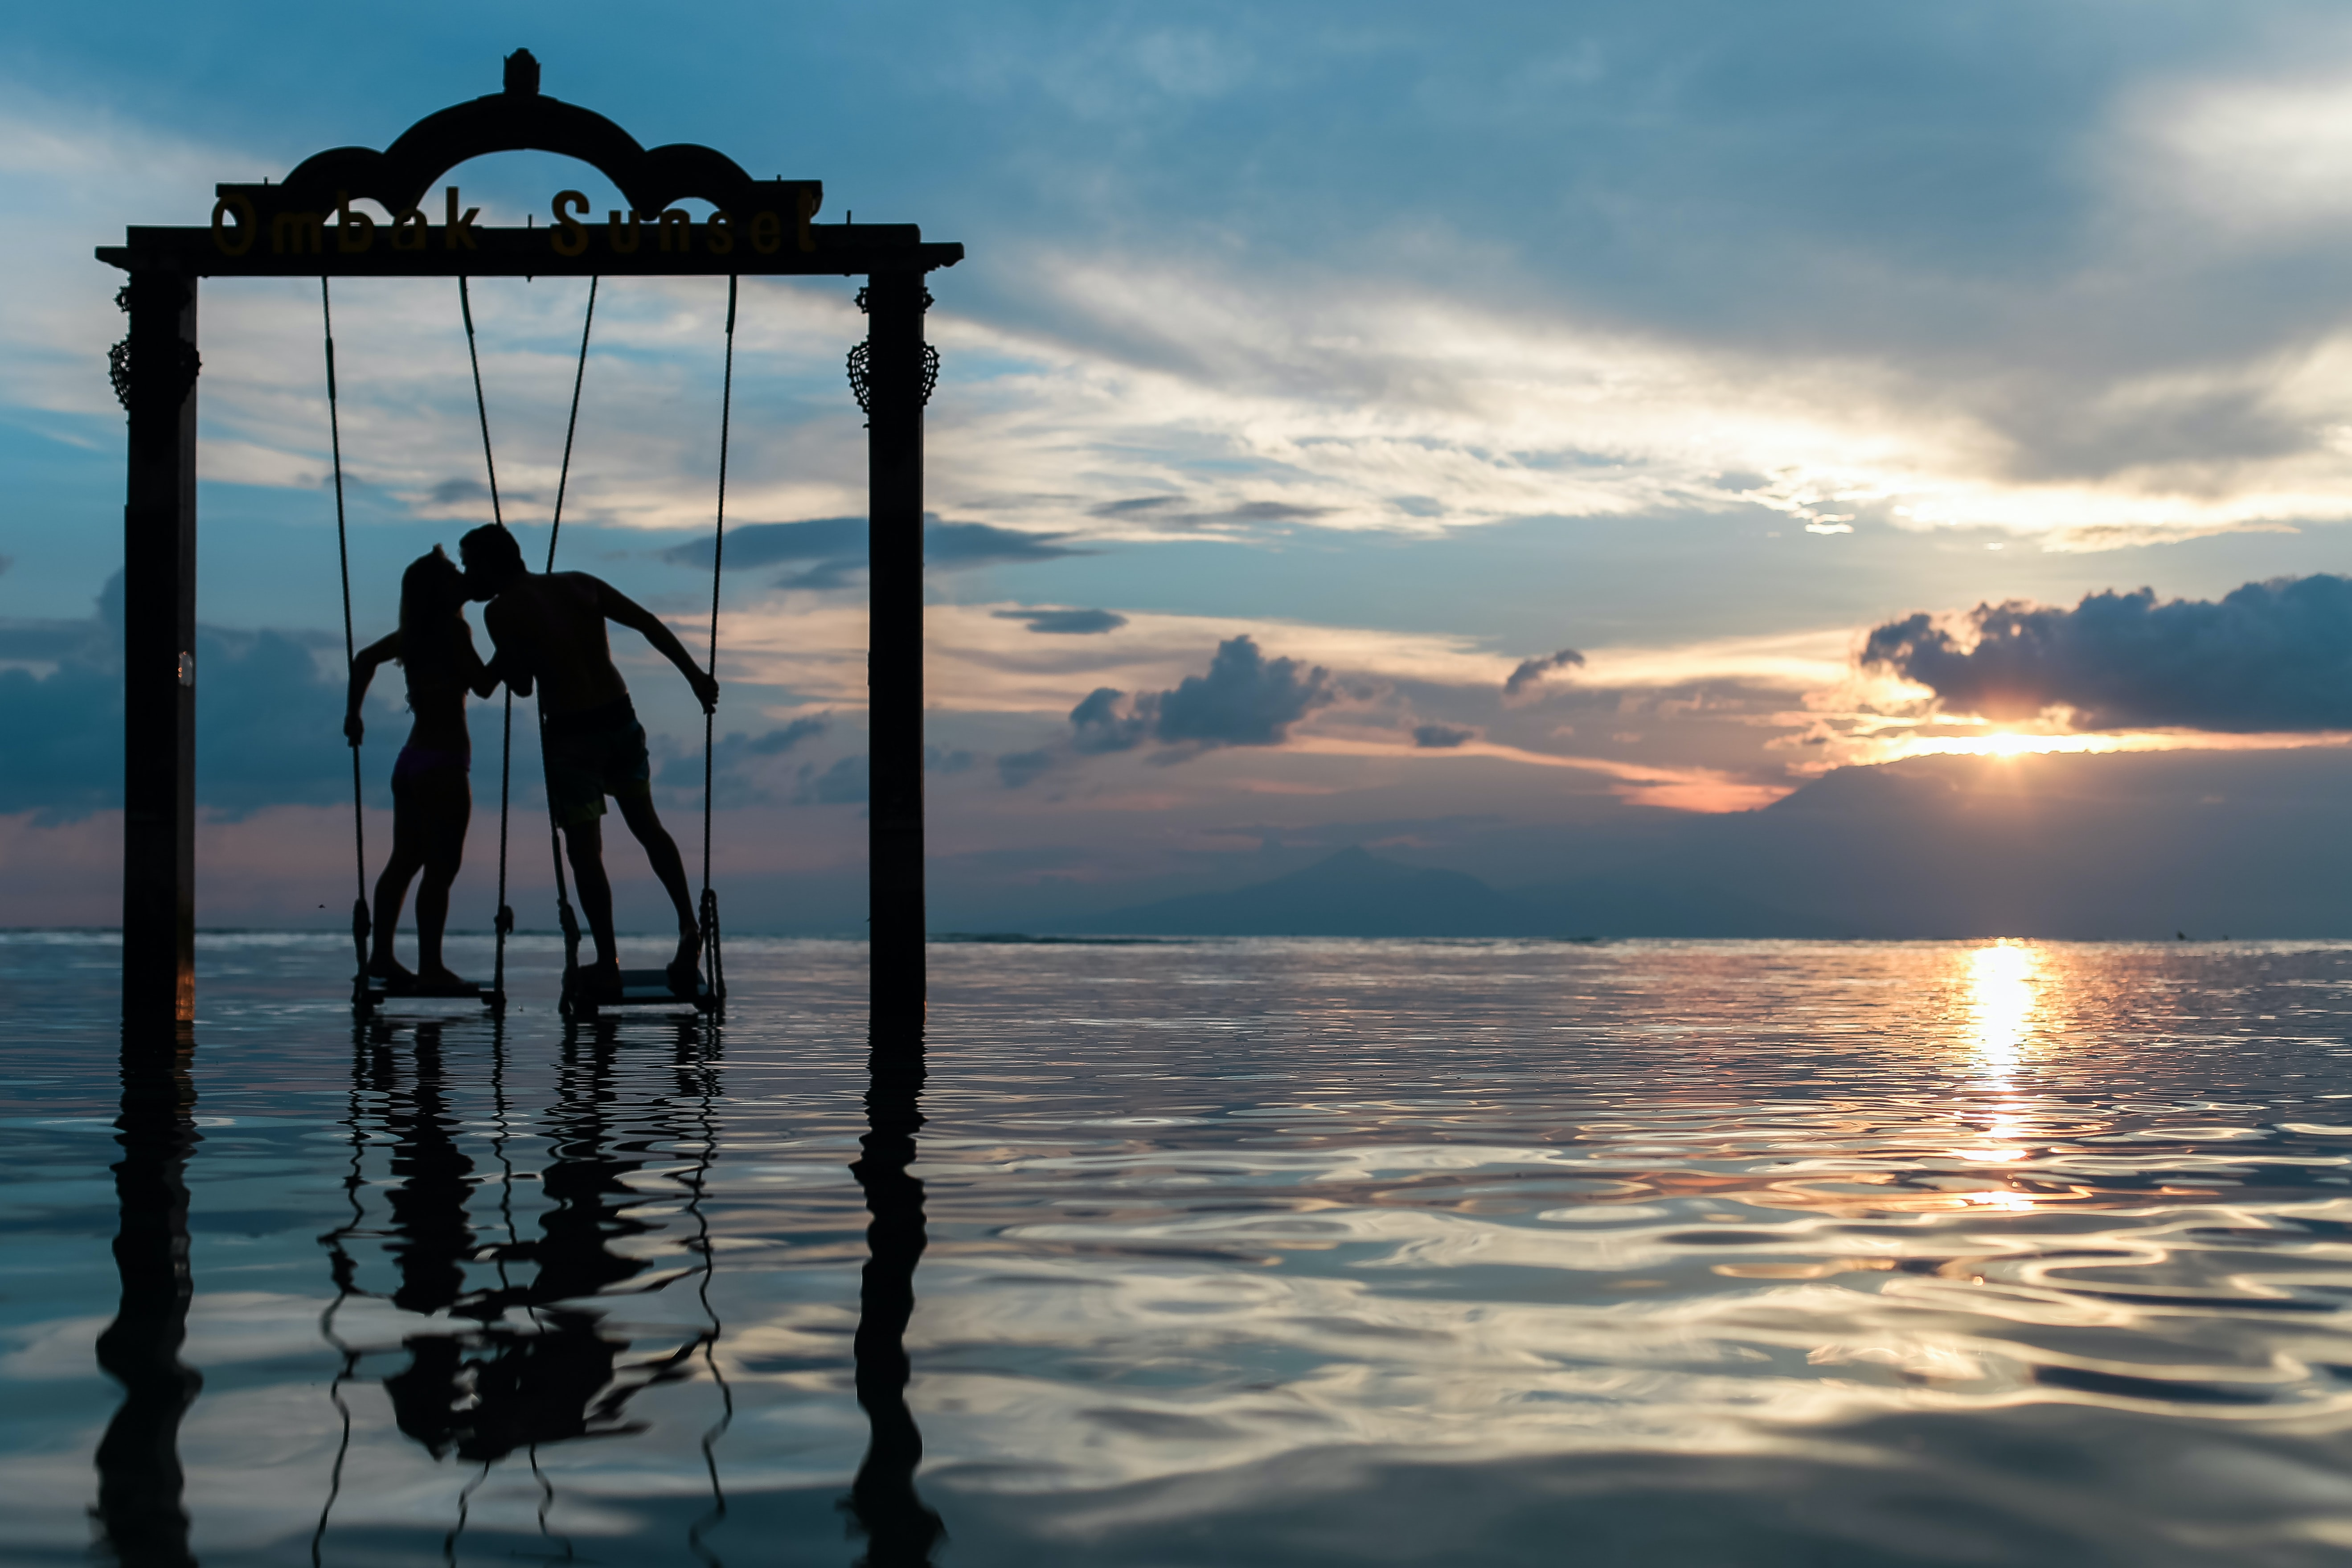 Lovers kiss on a tropical ocean swing at sunset